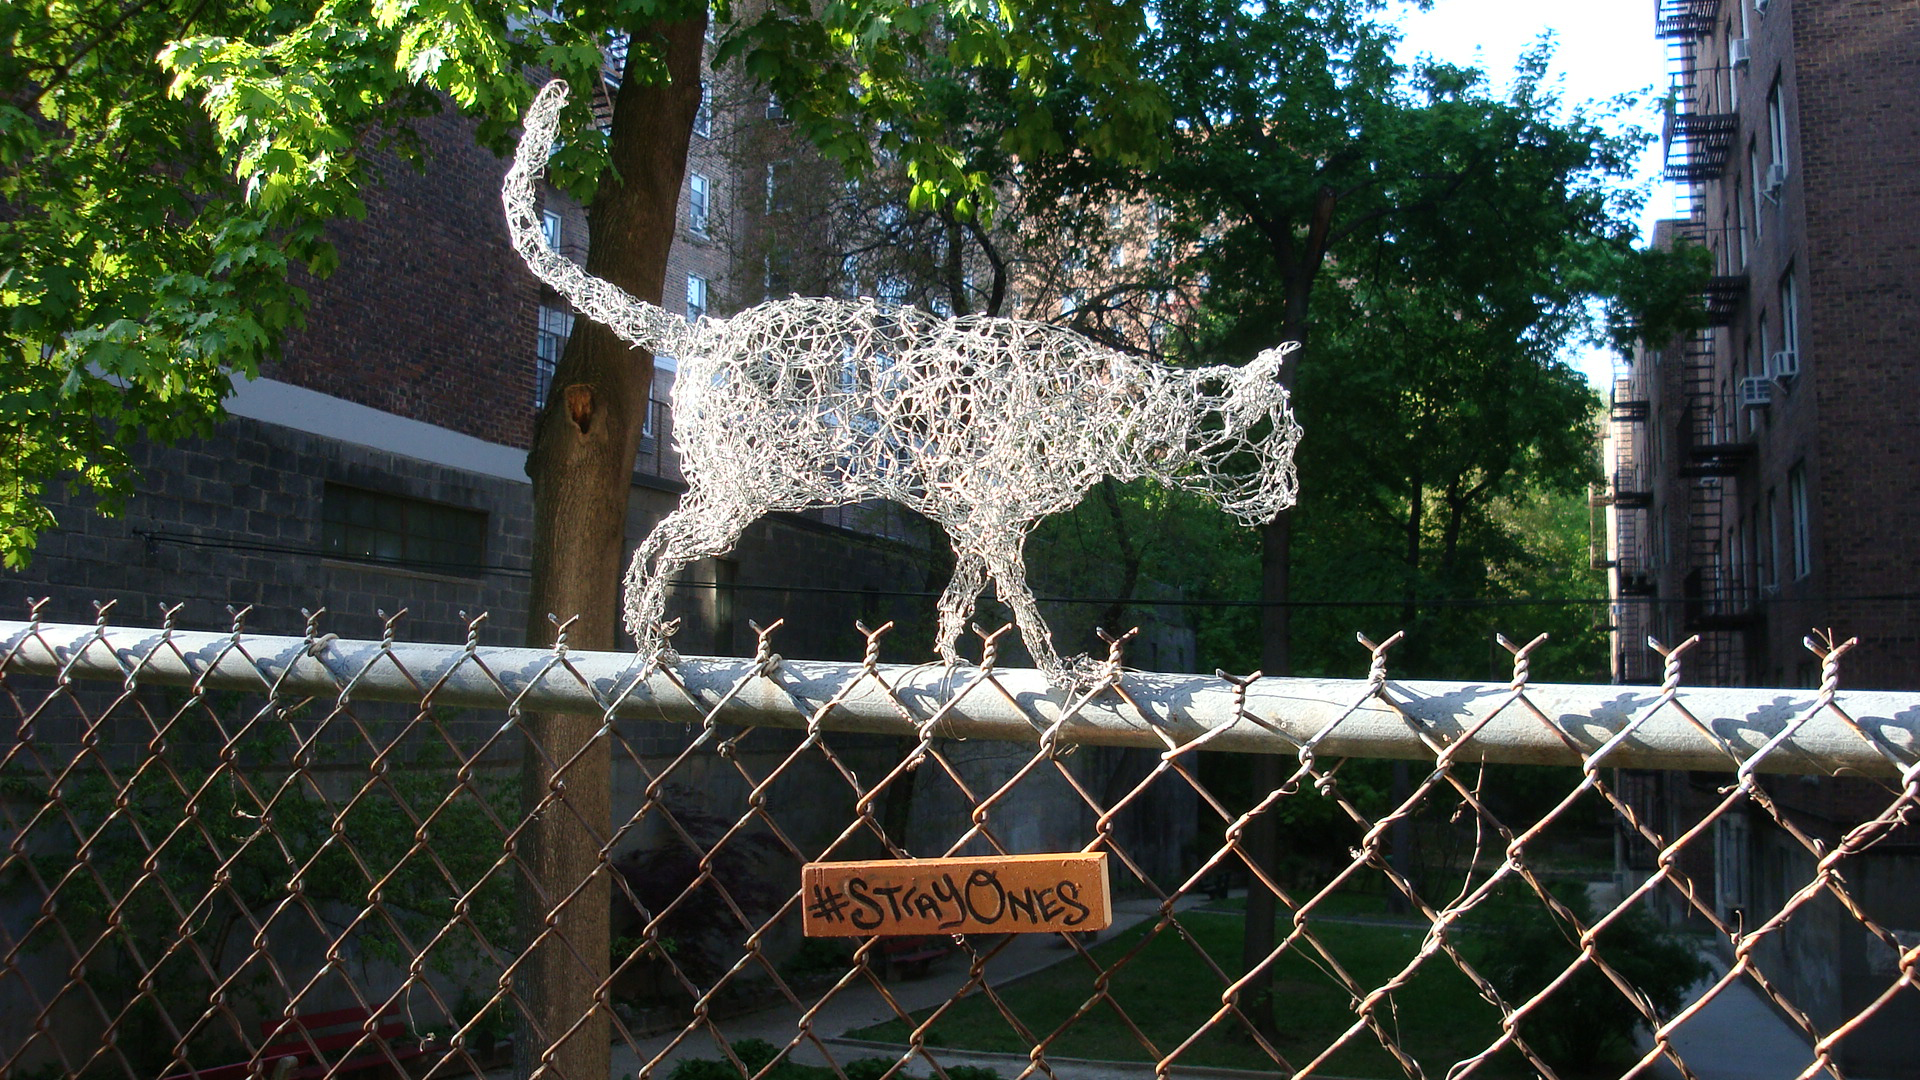 StrayOnes, On The Fence